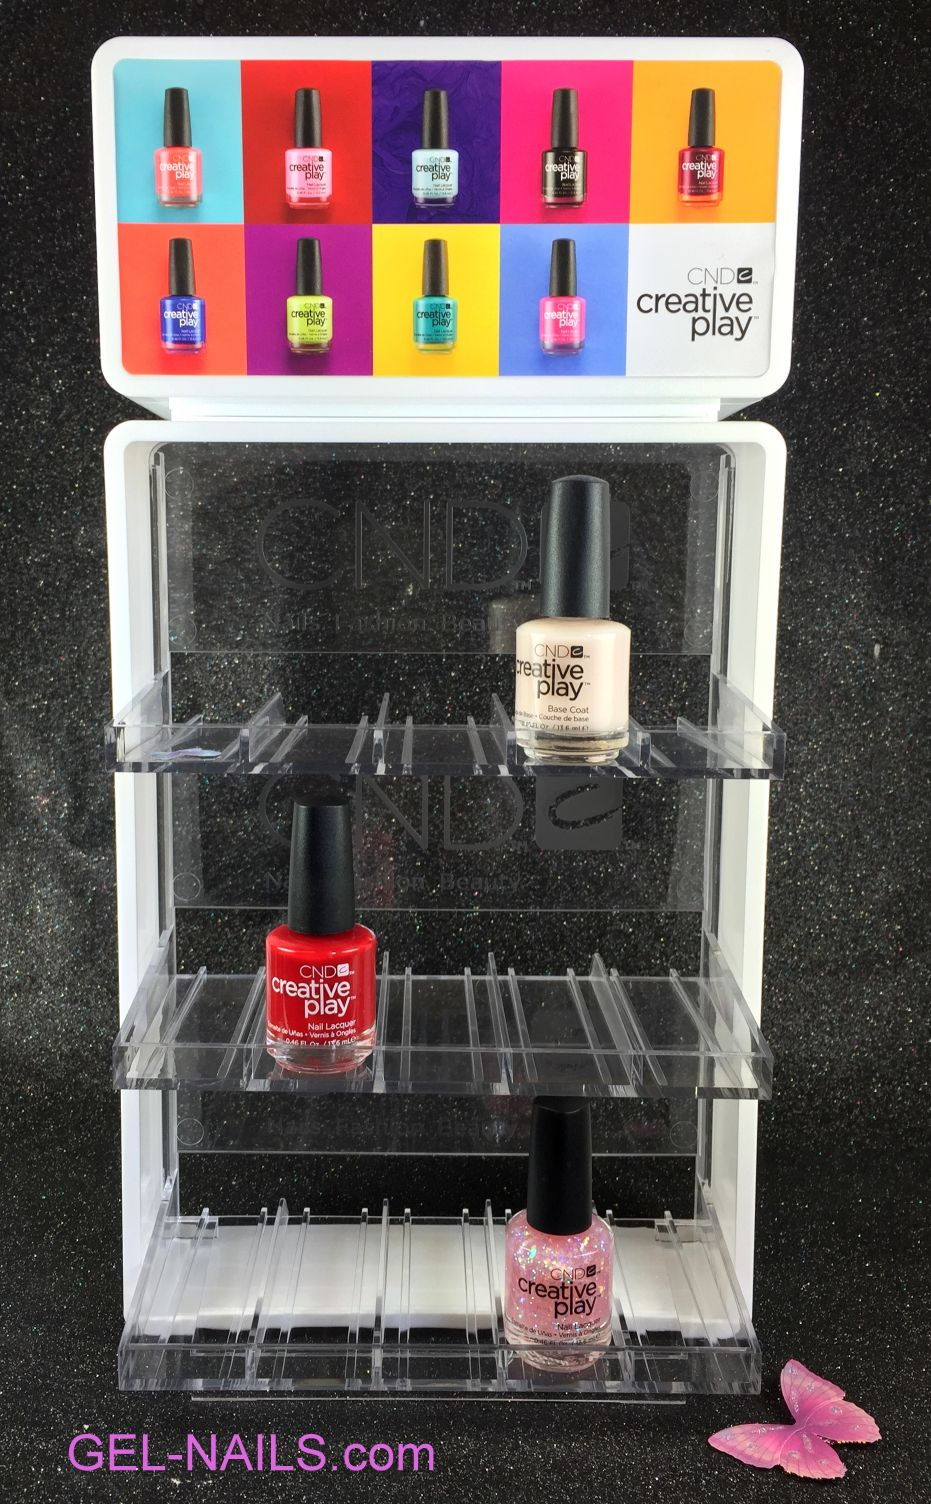 Cnd Clear Creative Play Nail Polish Display Rack